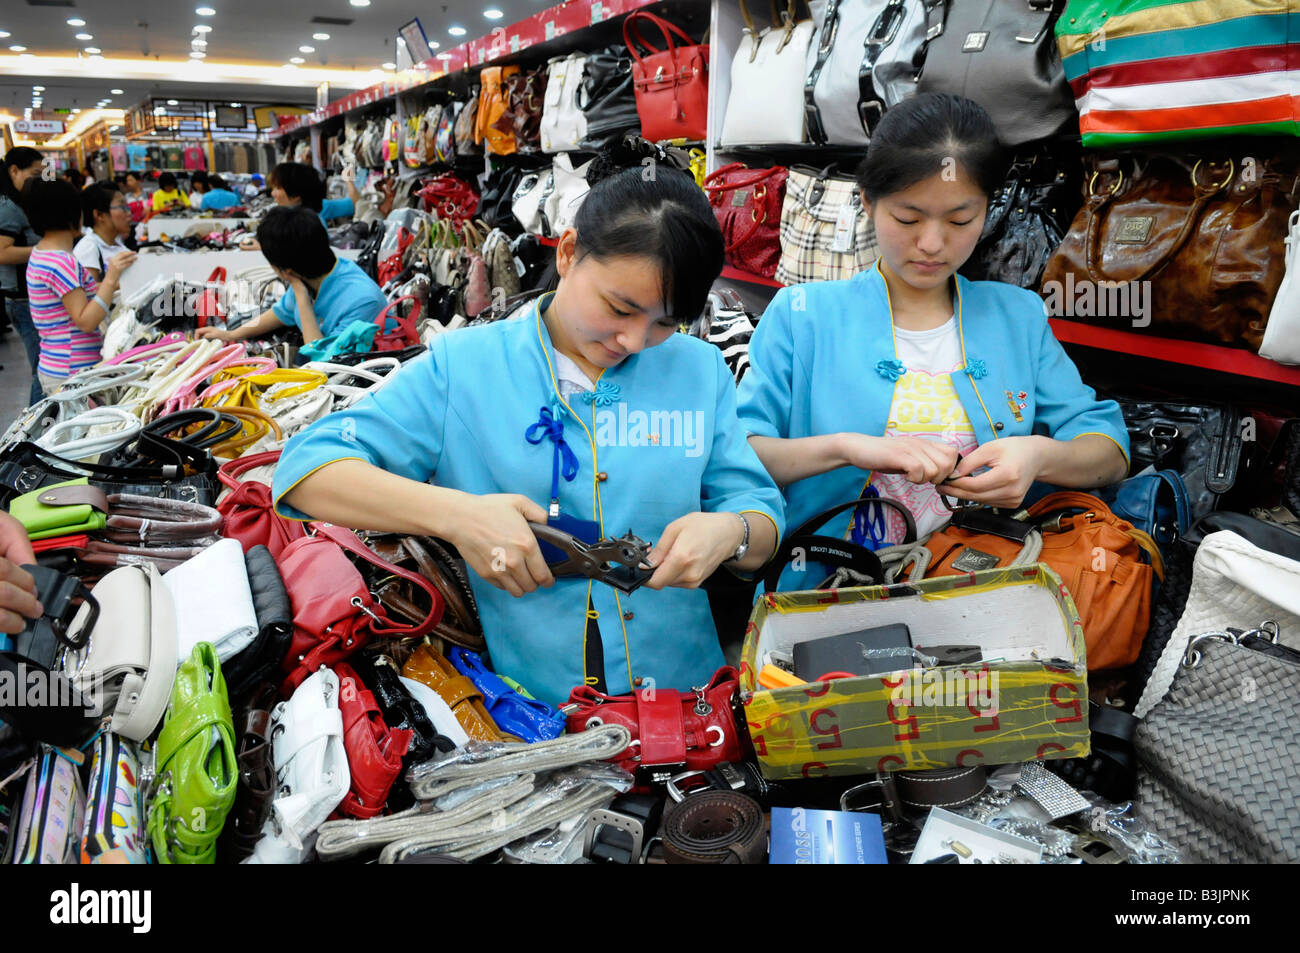 Sales ladies at the Hong Qiao Pearl Market in Beijing, China. - Stock Image